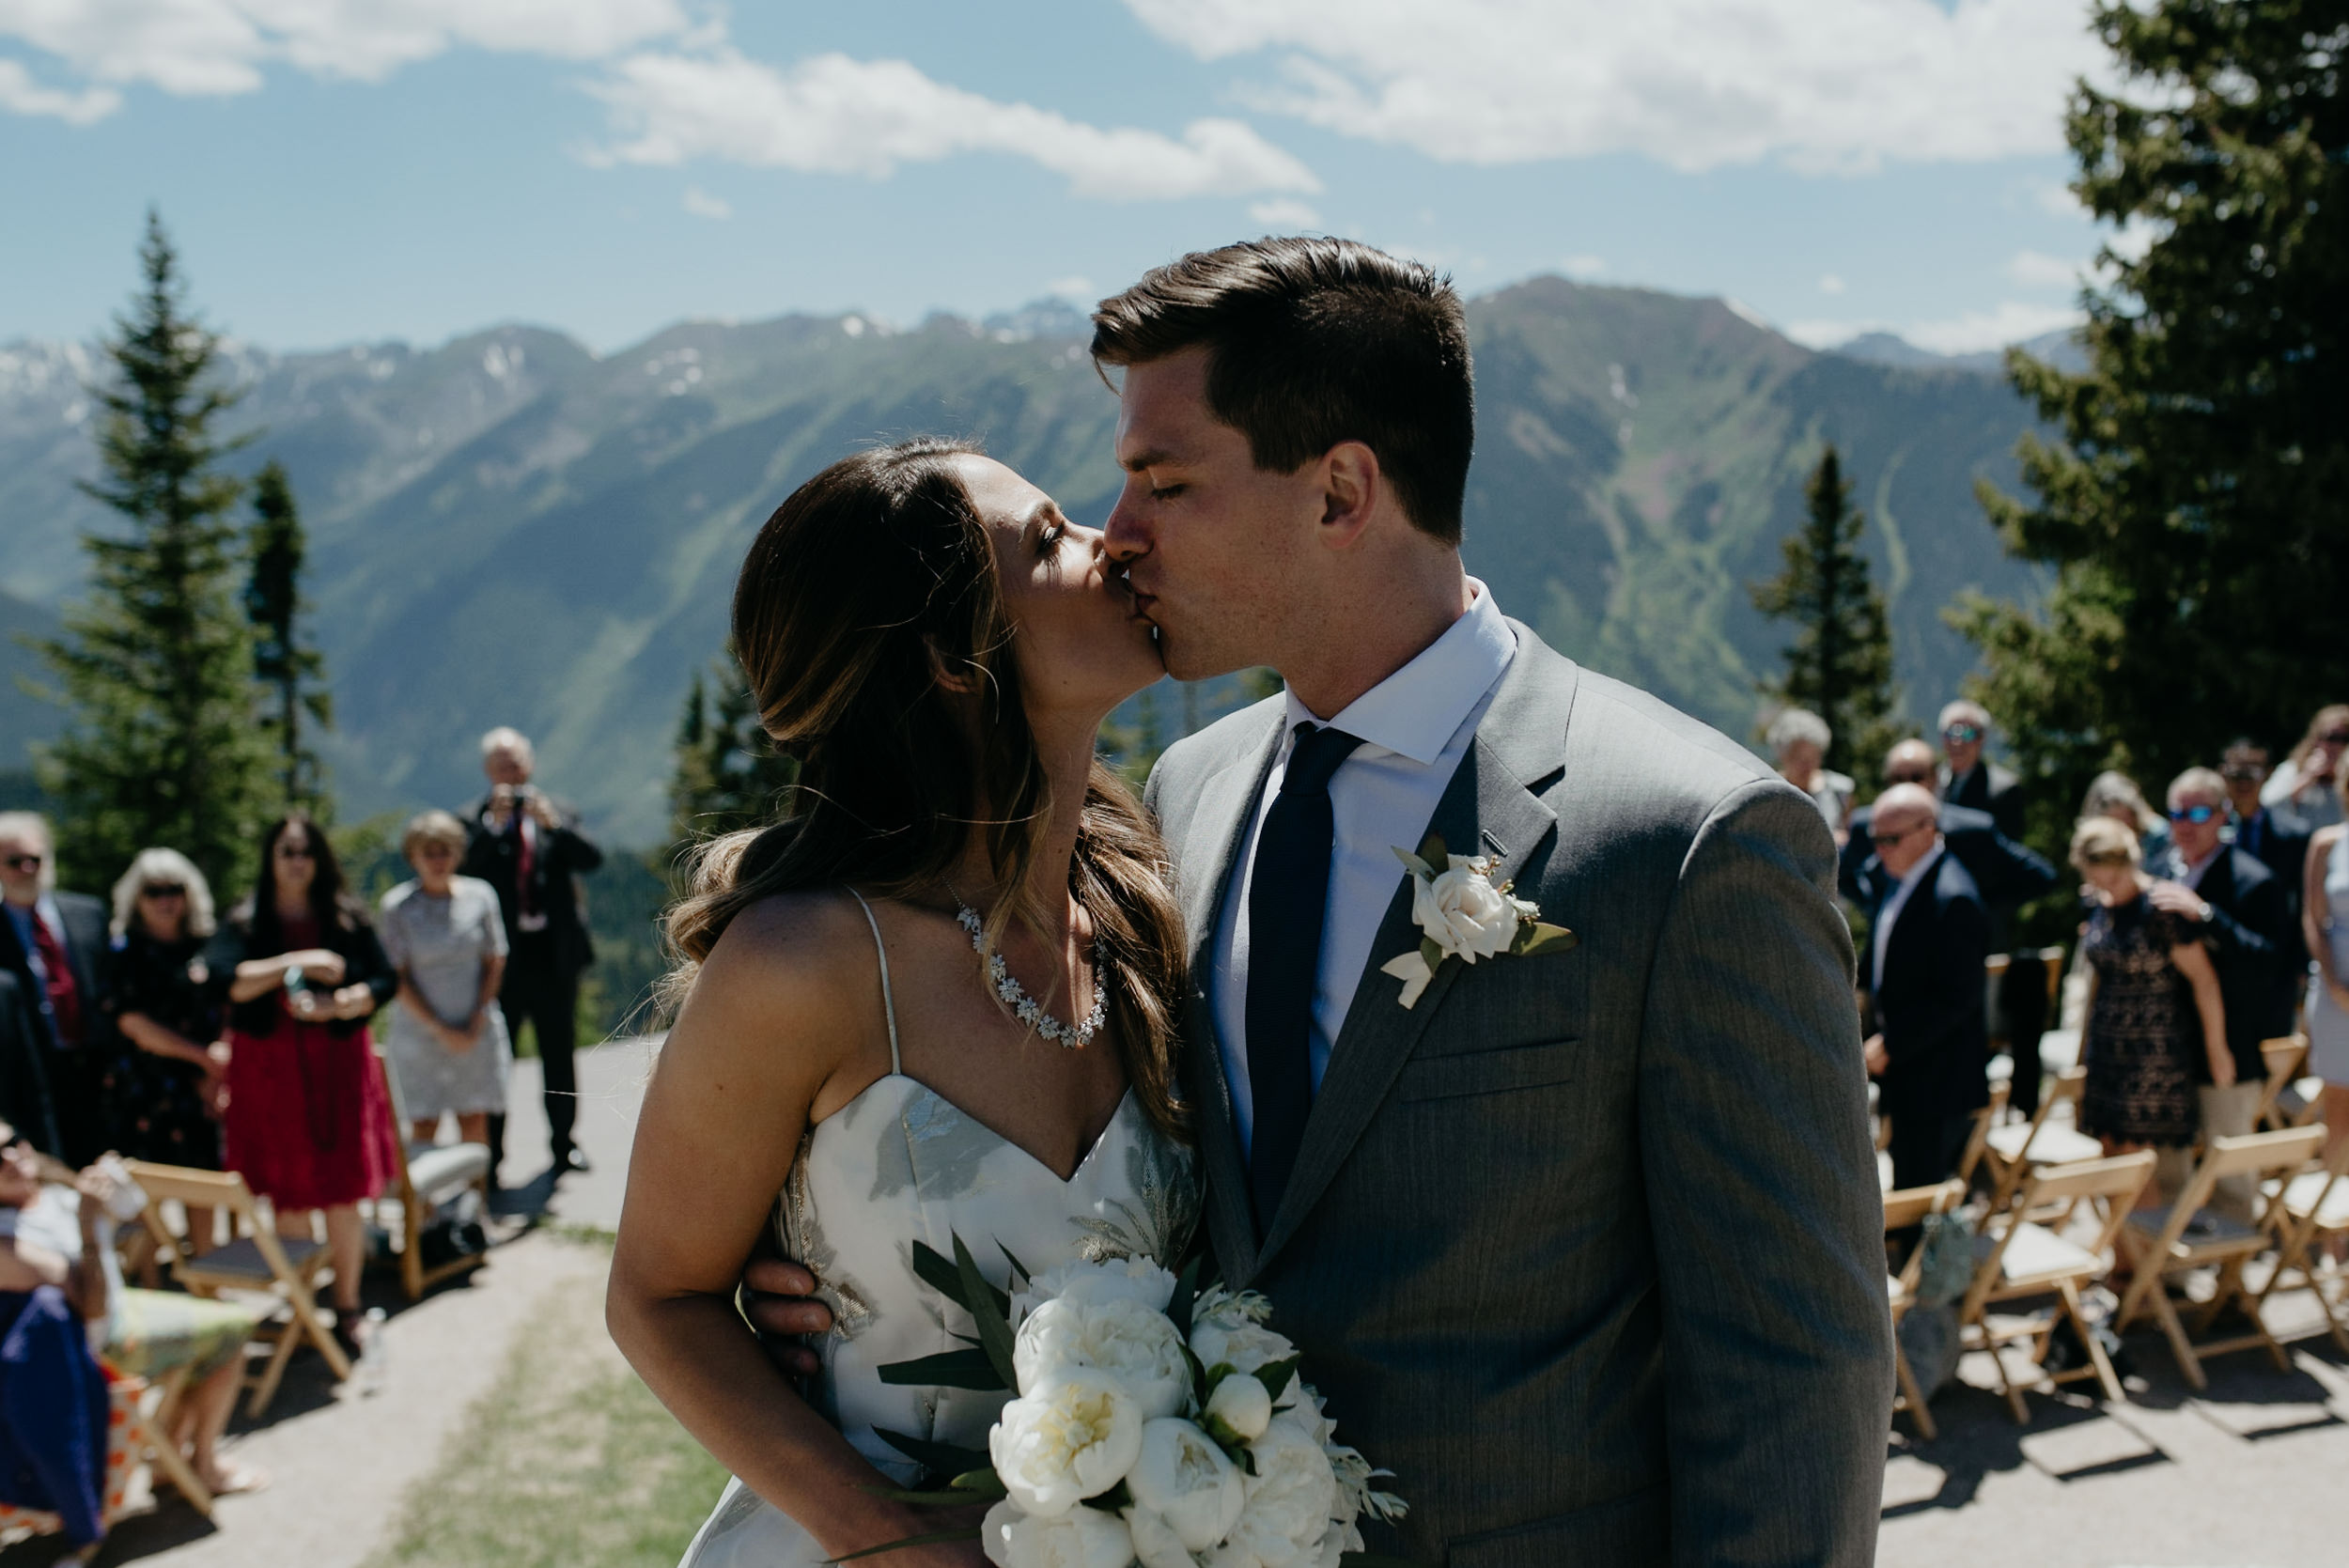 Bride and groom kiss at The Little Nell. Colorado wedding and elopement photographer.